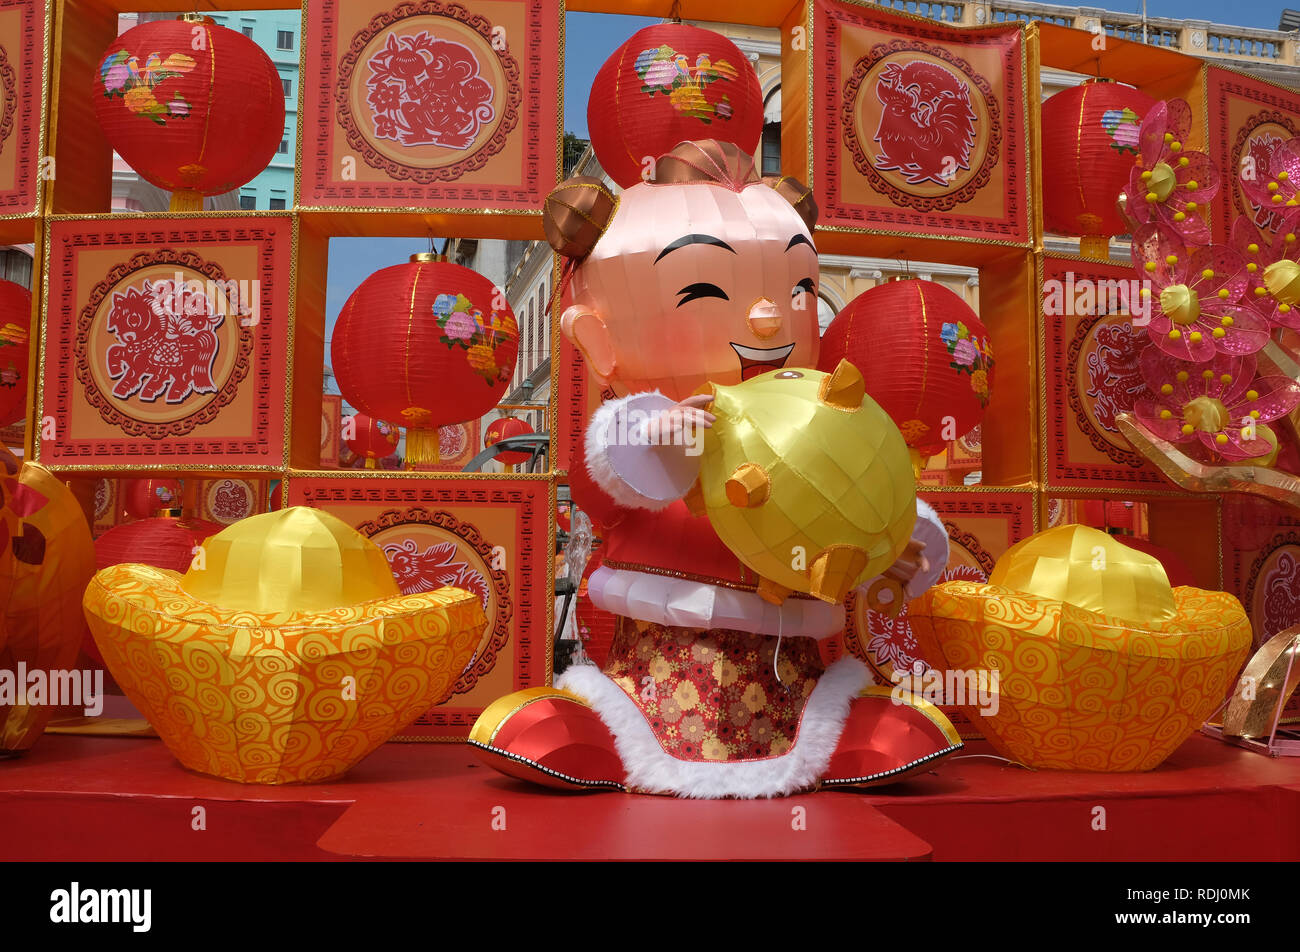 Display to celebrate Chinese New Year of the pig in Macau, China - Stock Image